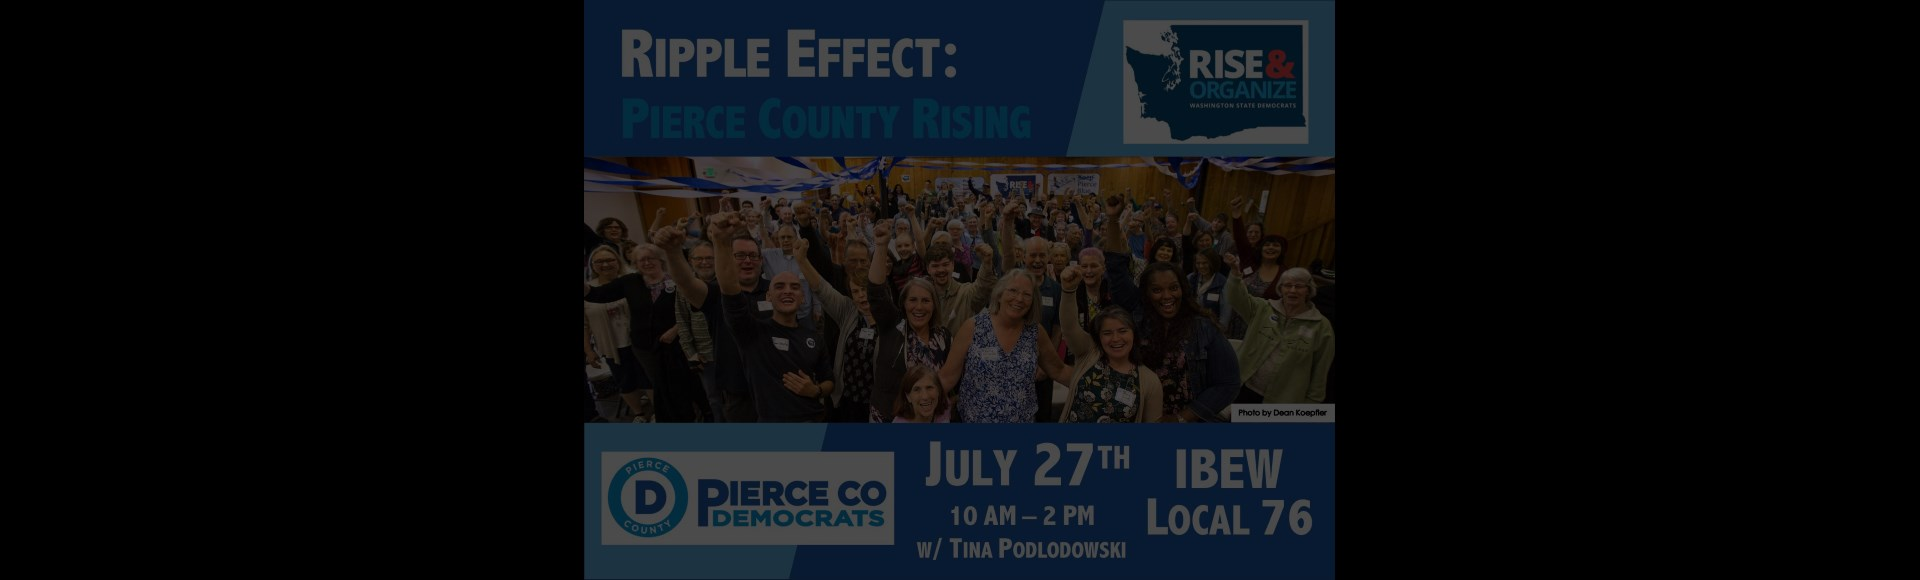 July 27th – Ripple Effect: Pierce County Rising